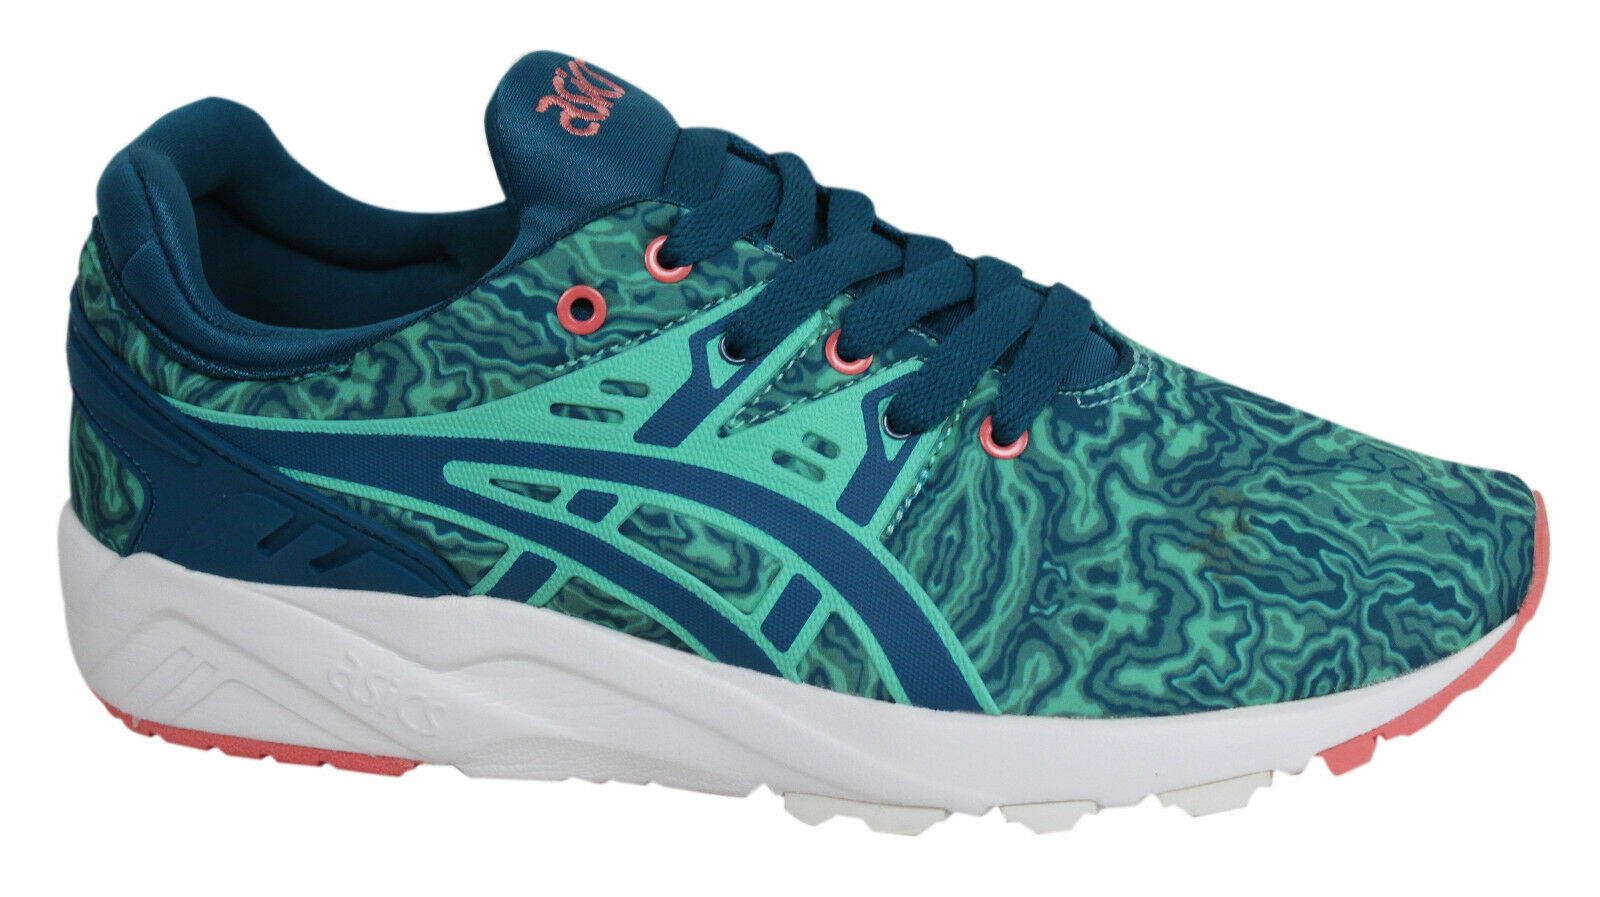 Asics Gel-Kayano Synthetic Grün Blau Lace Up Synthetic Gel-Kayano Damenschuhe Trainers H6N6N 4845 M9 810d9b